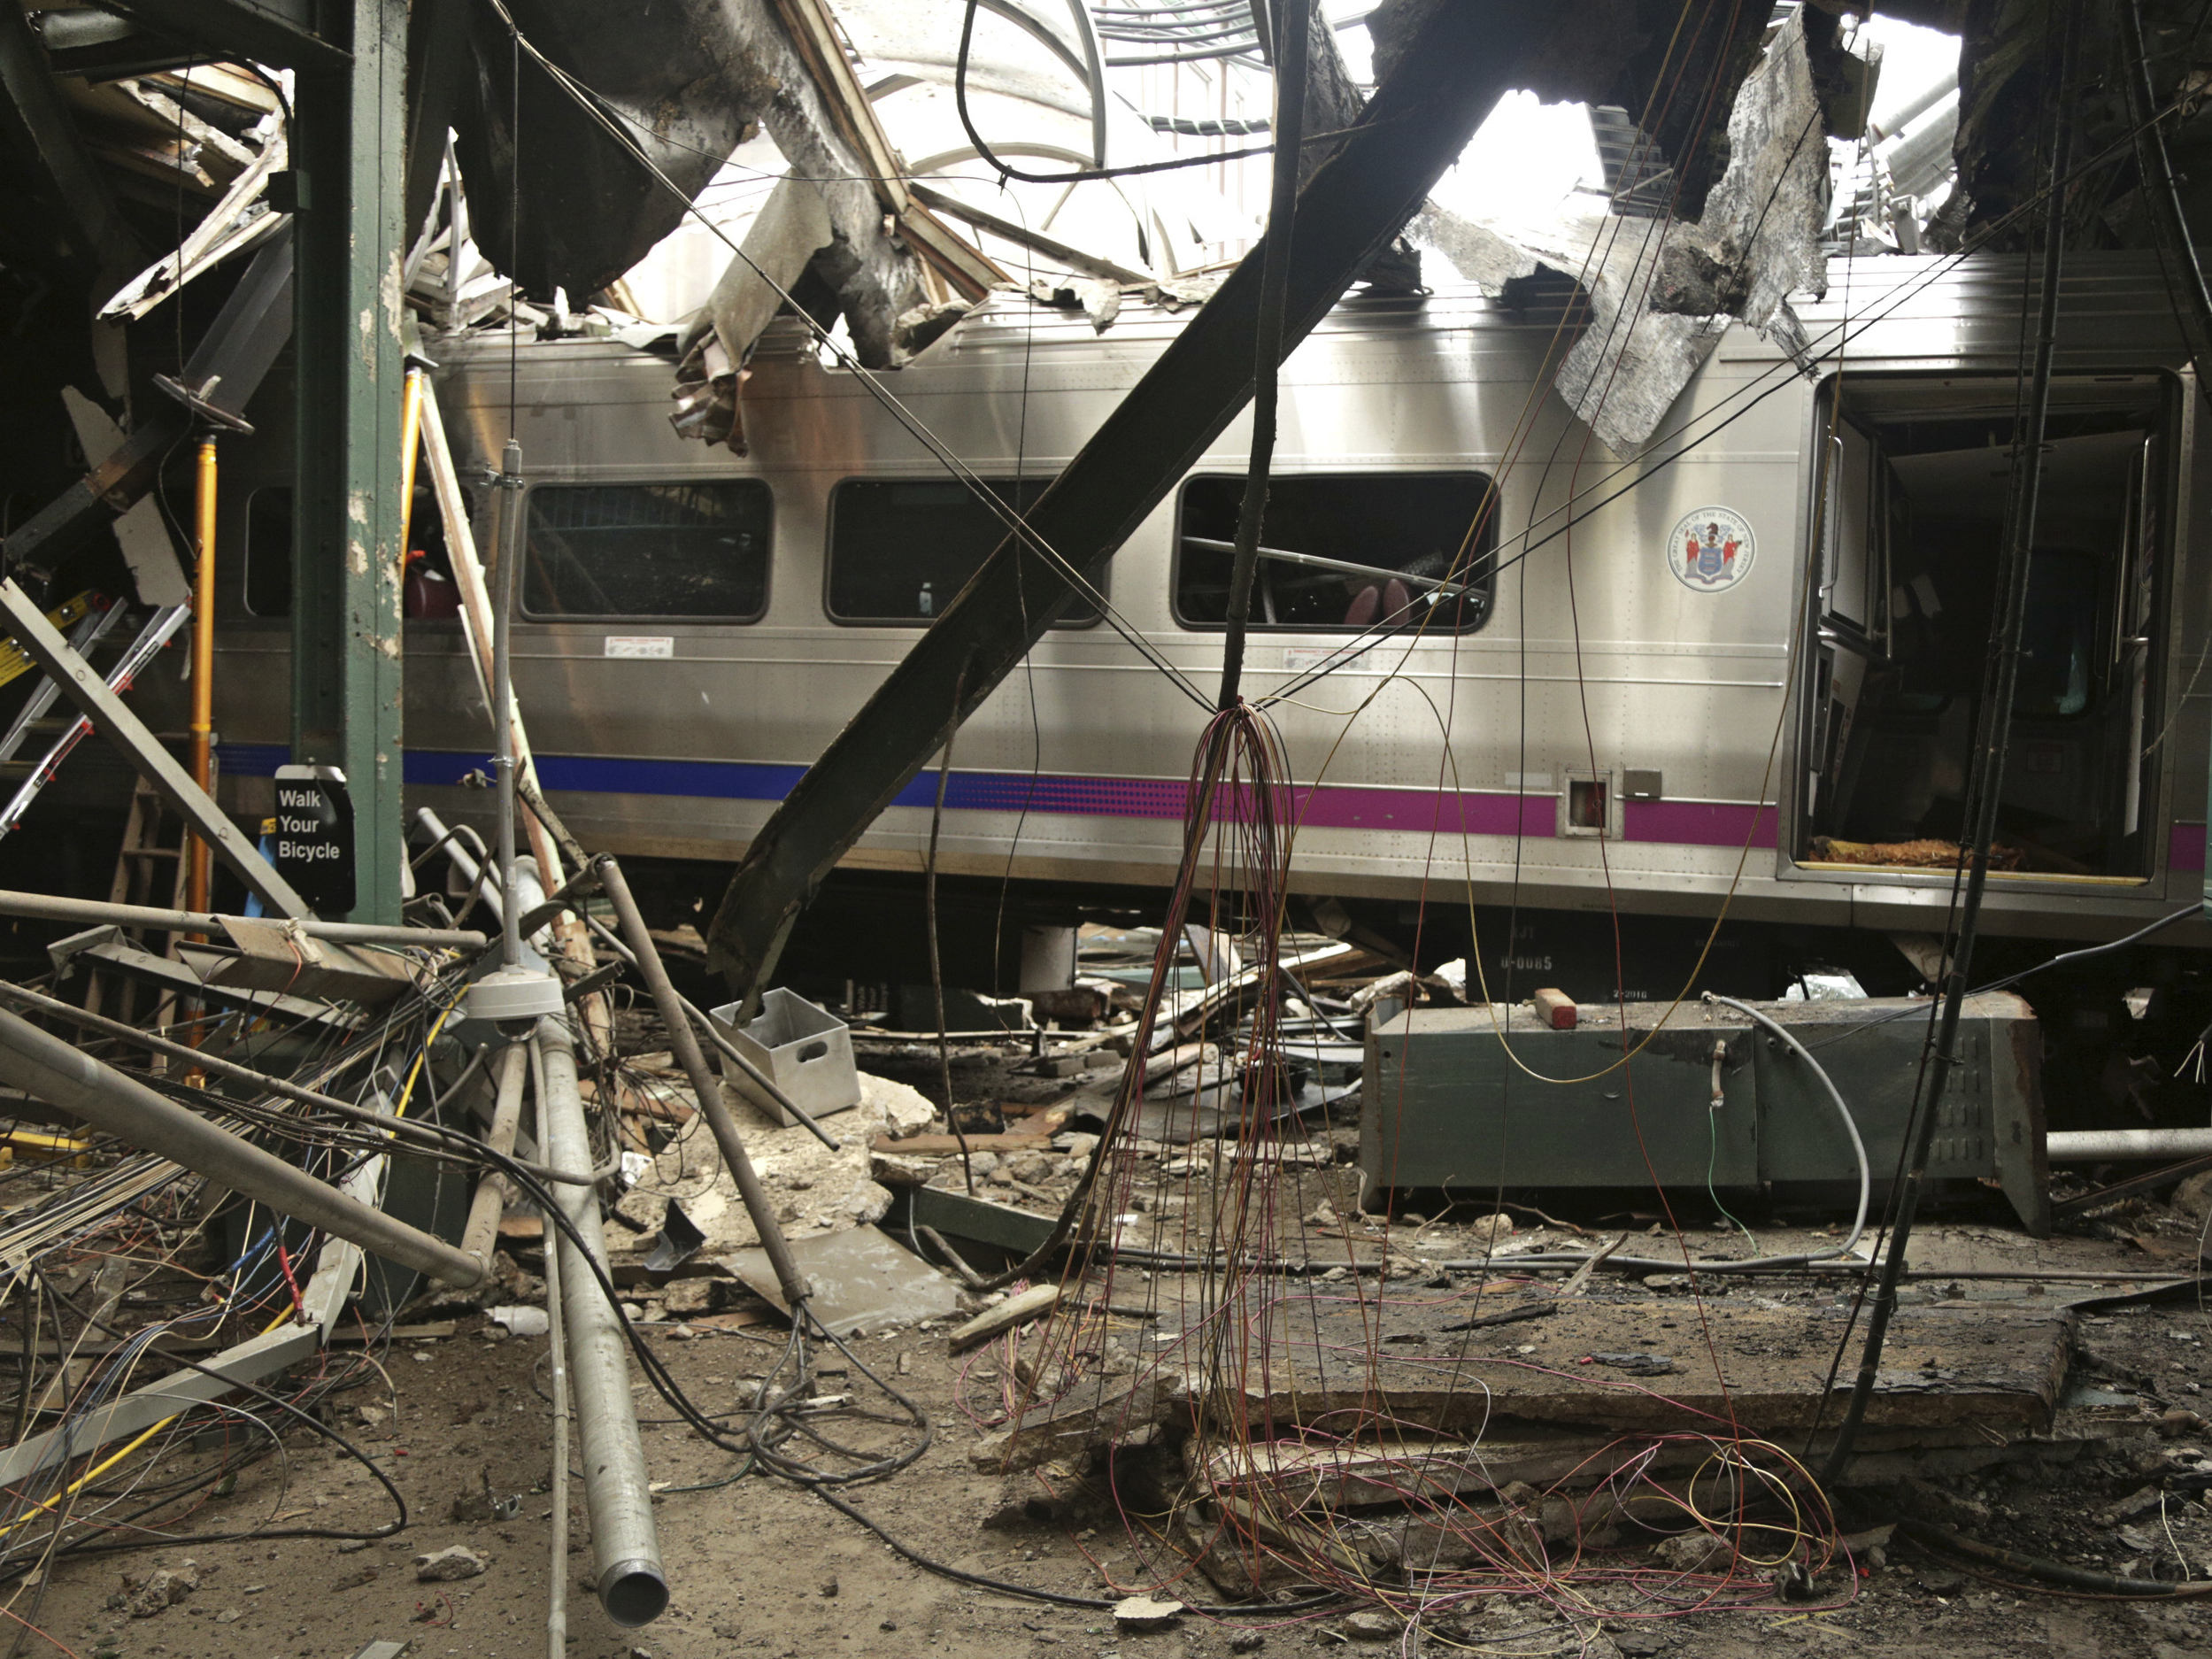 New Jersey Commuter Train Was Speeding Before Crash